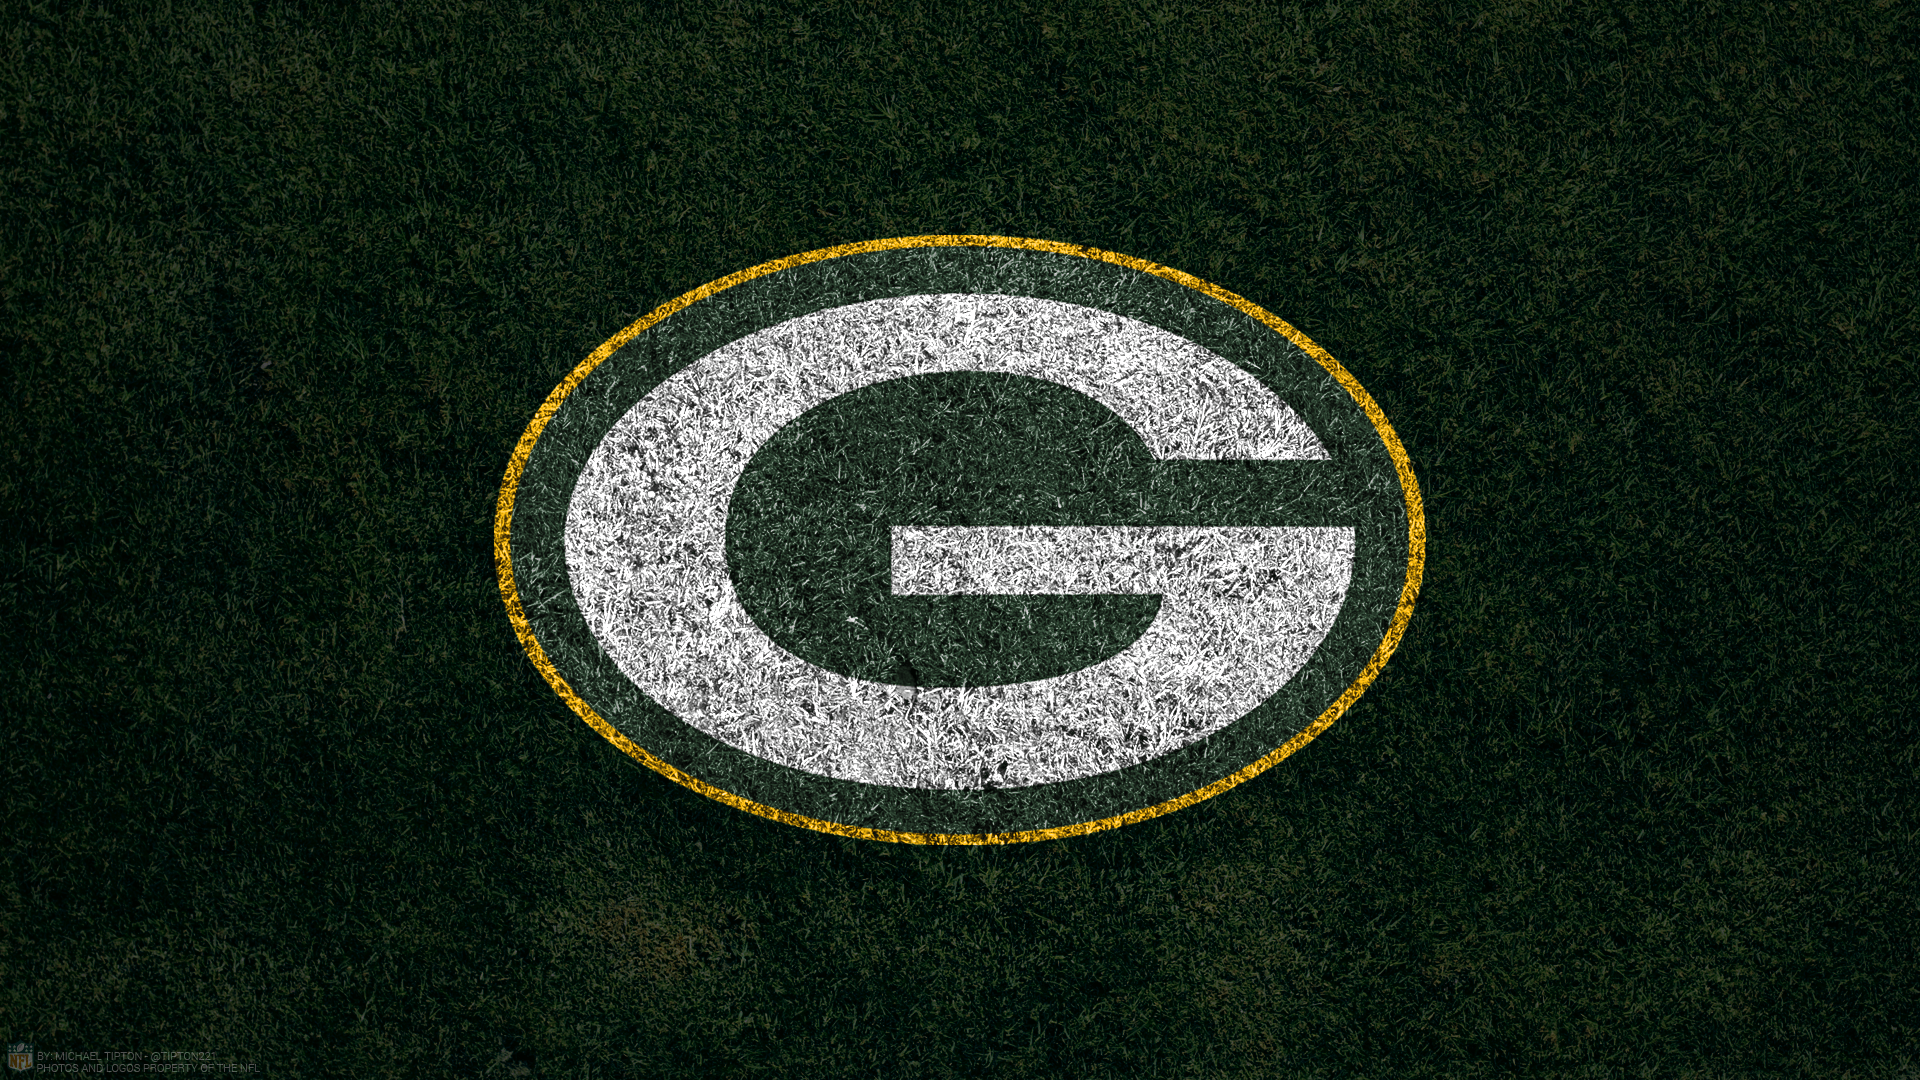 Green Bay Packer Wallpaper: Green Bay Packers Football Wallpapers